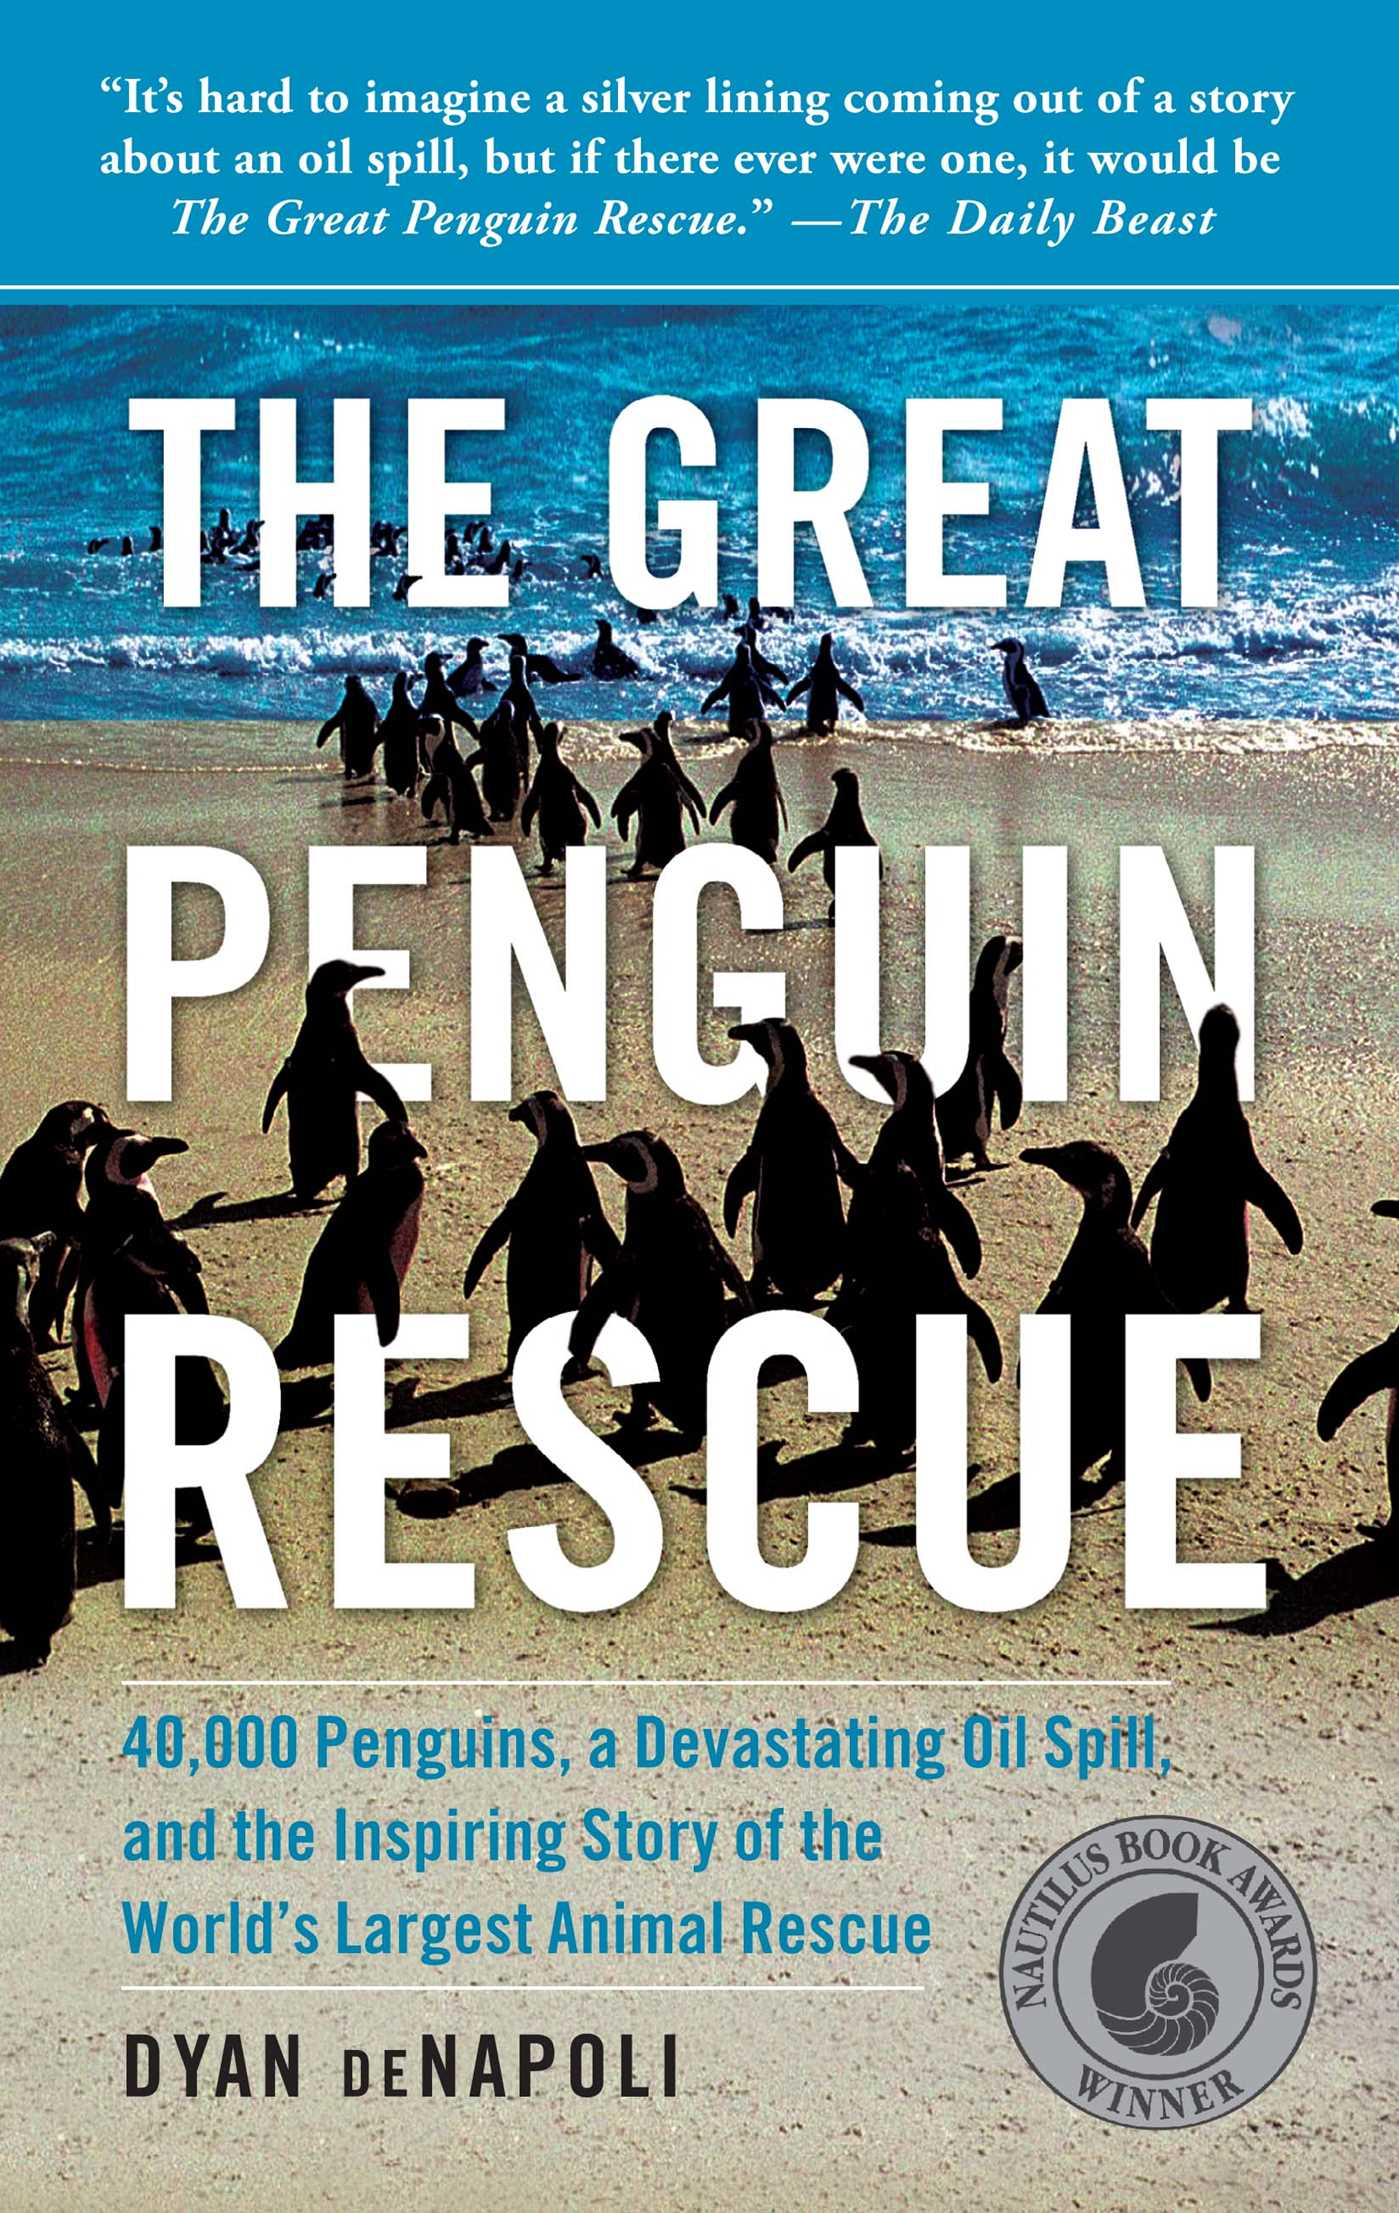 Great-penguin-rescue-9781439154861_hr